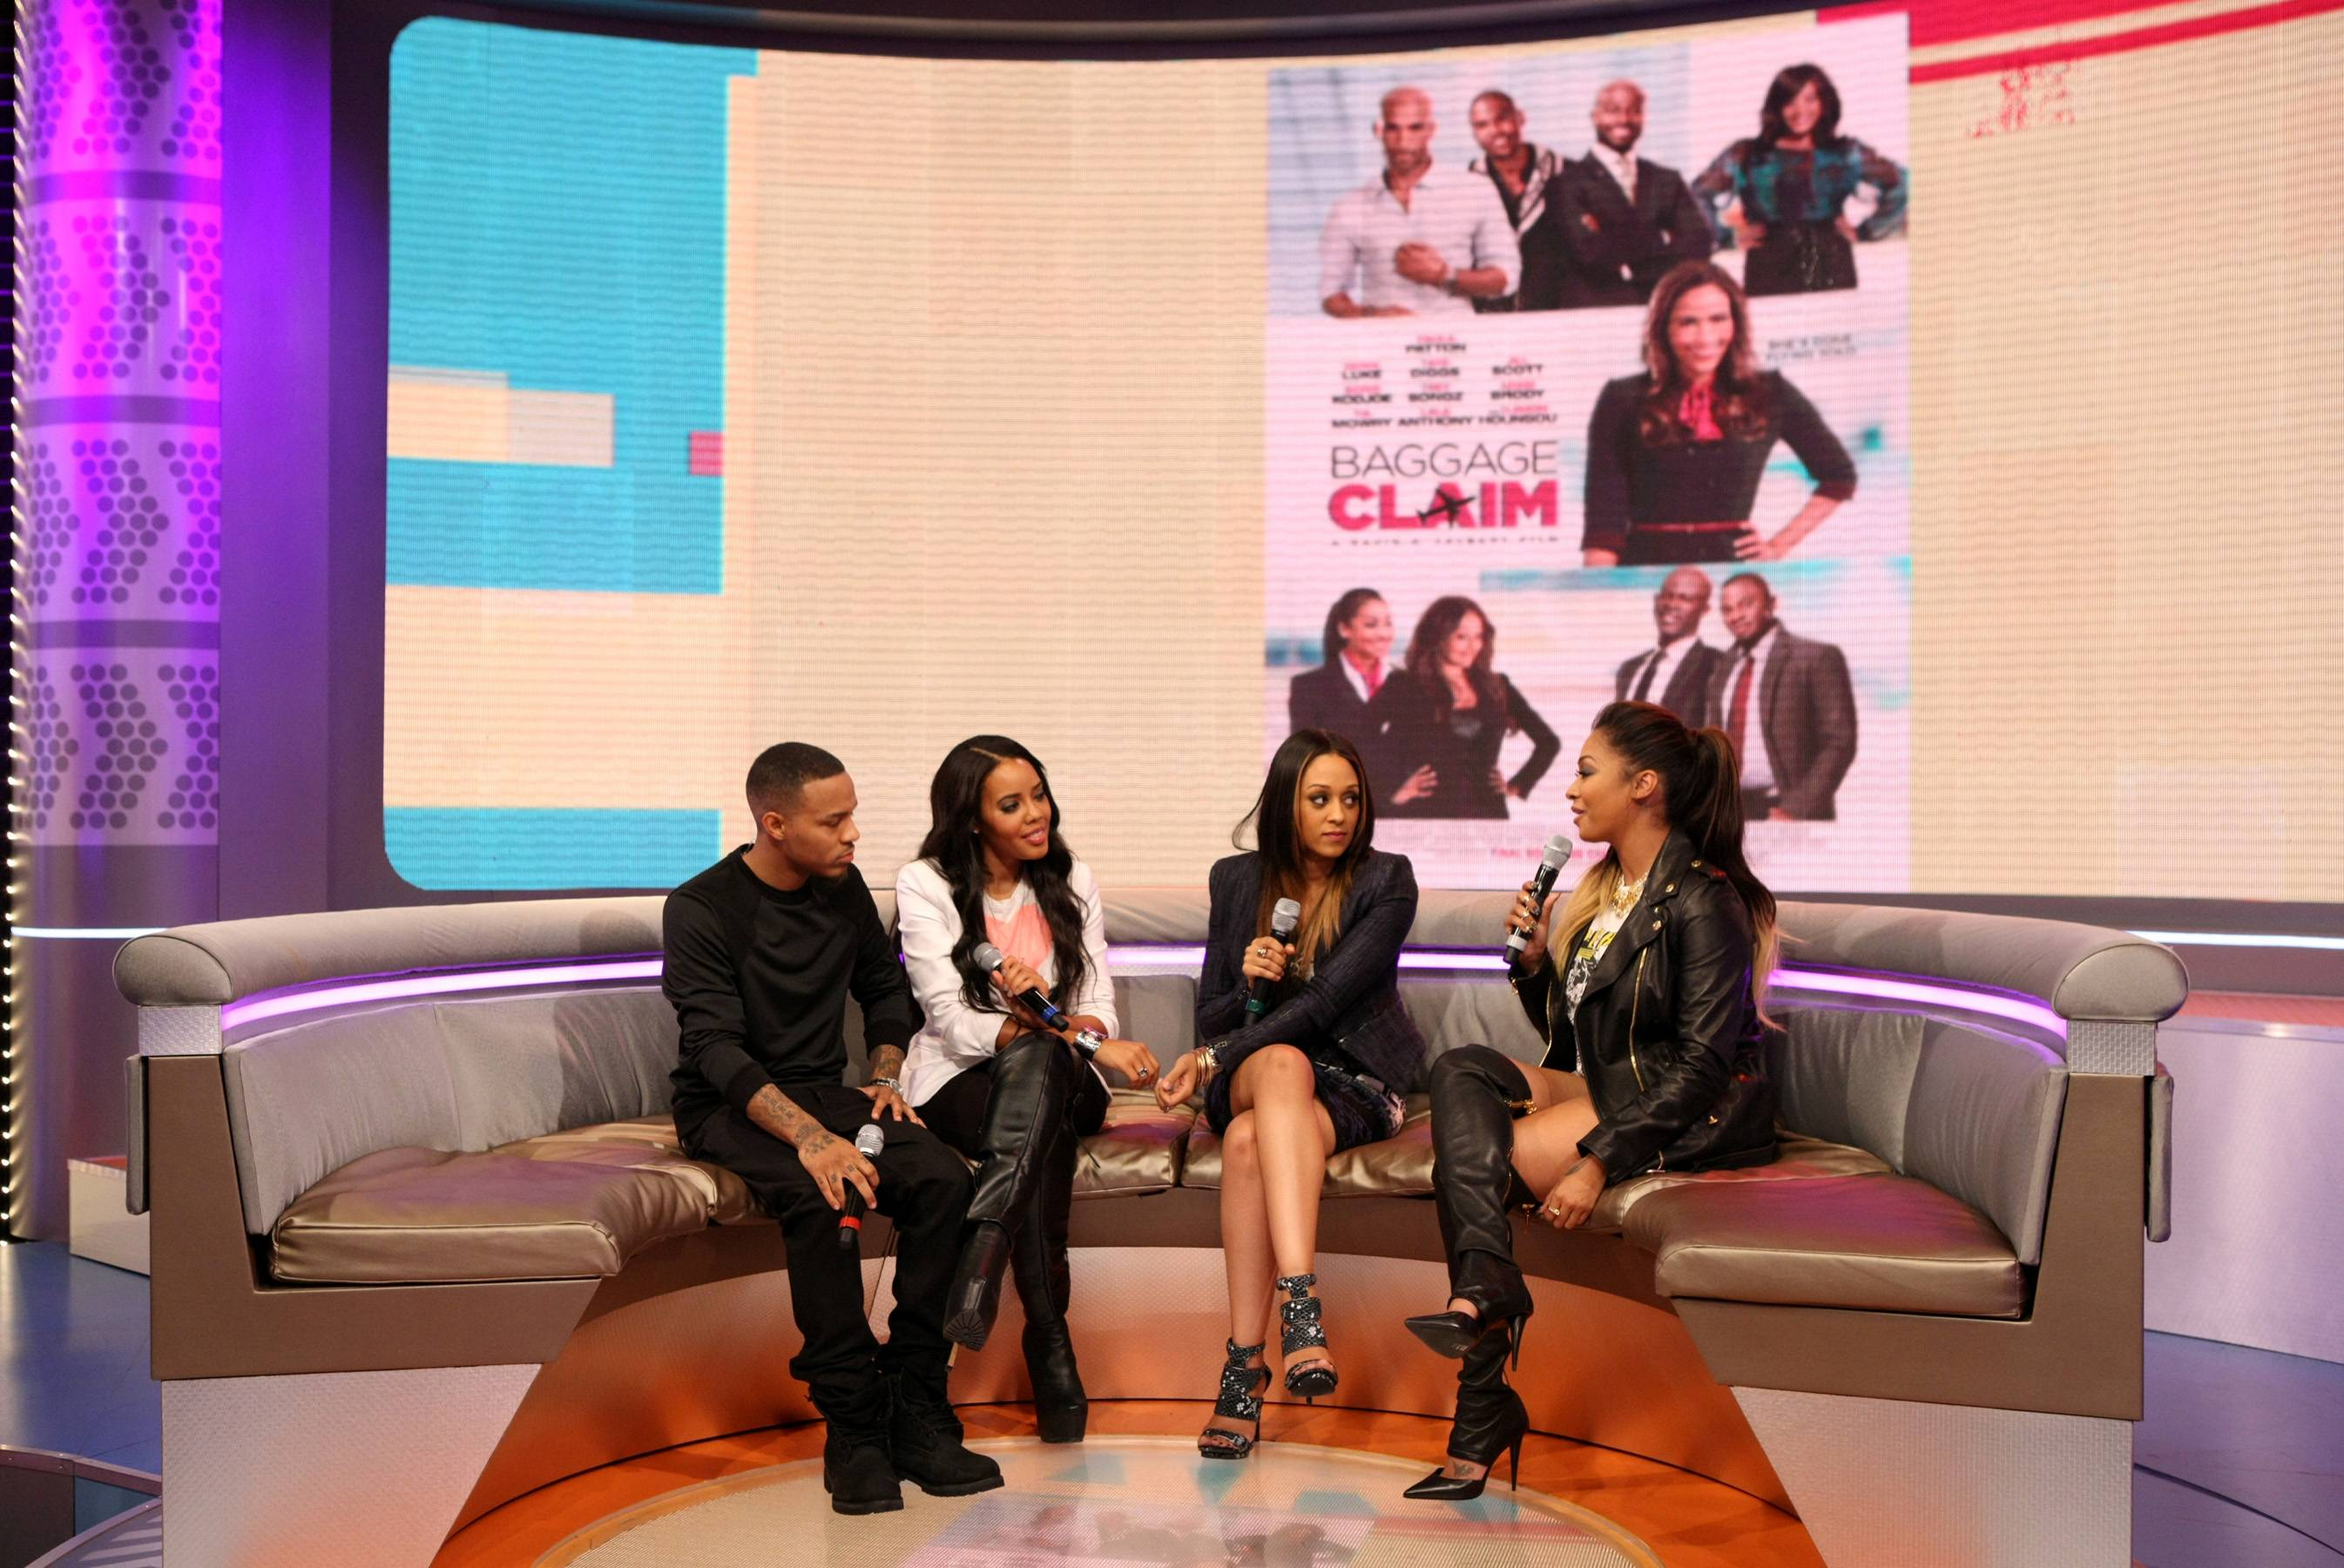 In Talks - Bow Wow, Angela Simmons,Tia Mowry-Hardrict and LaLa Anthony talk about new film Baggage Claim.(Photo: Bennett Raglin/BET/Getty Images for BET)